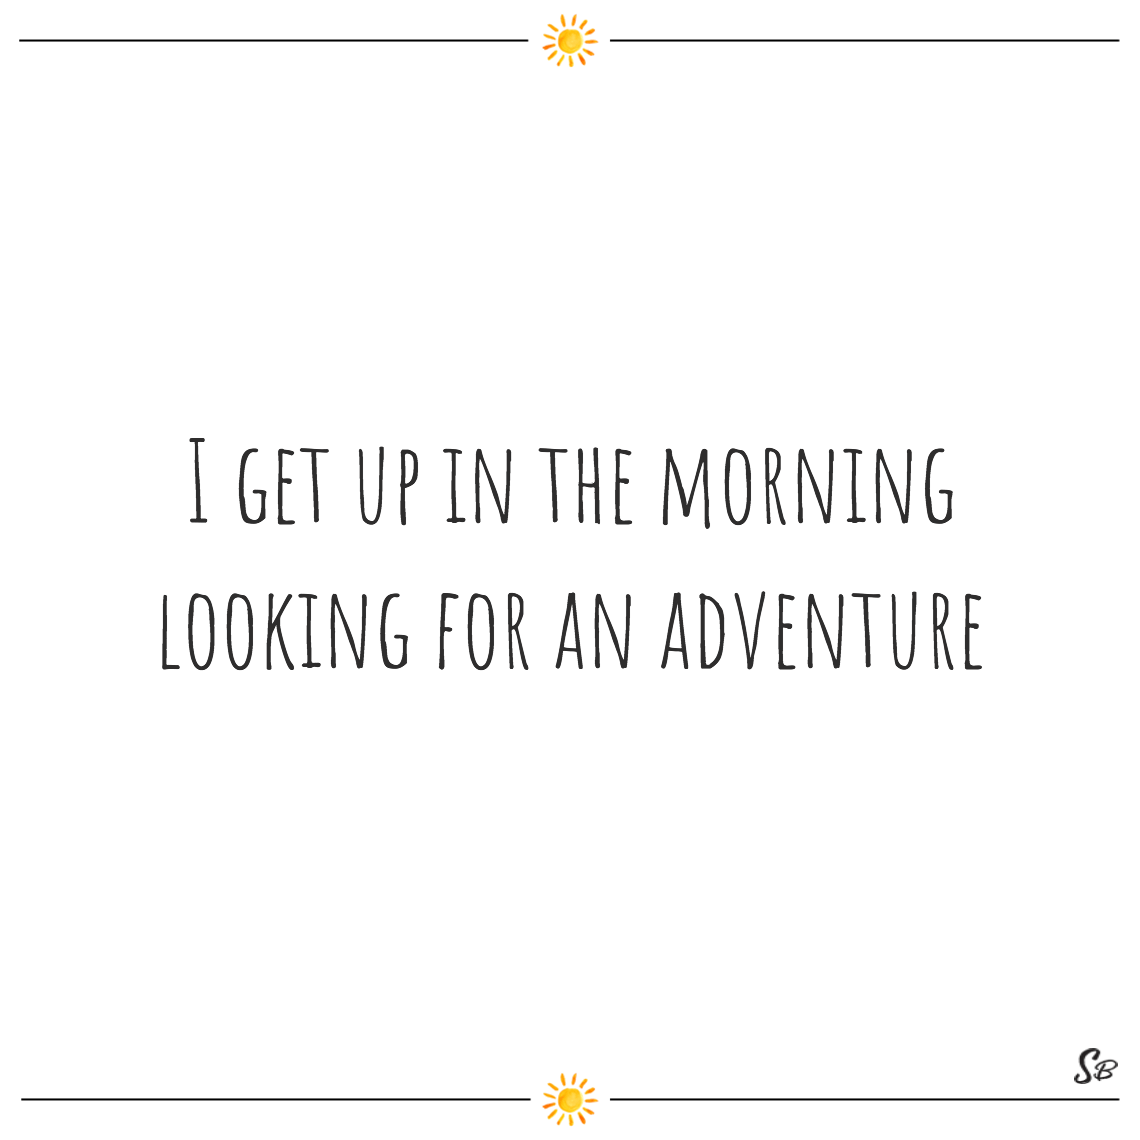 I get up in the morning looking for an adventure - good morning quotes